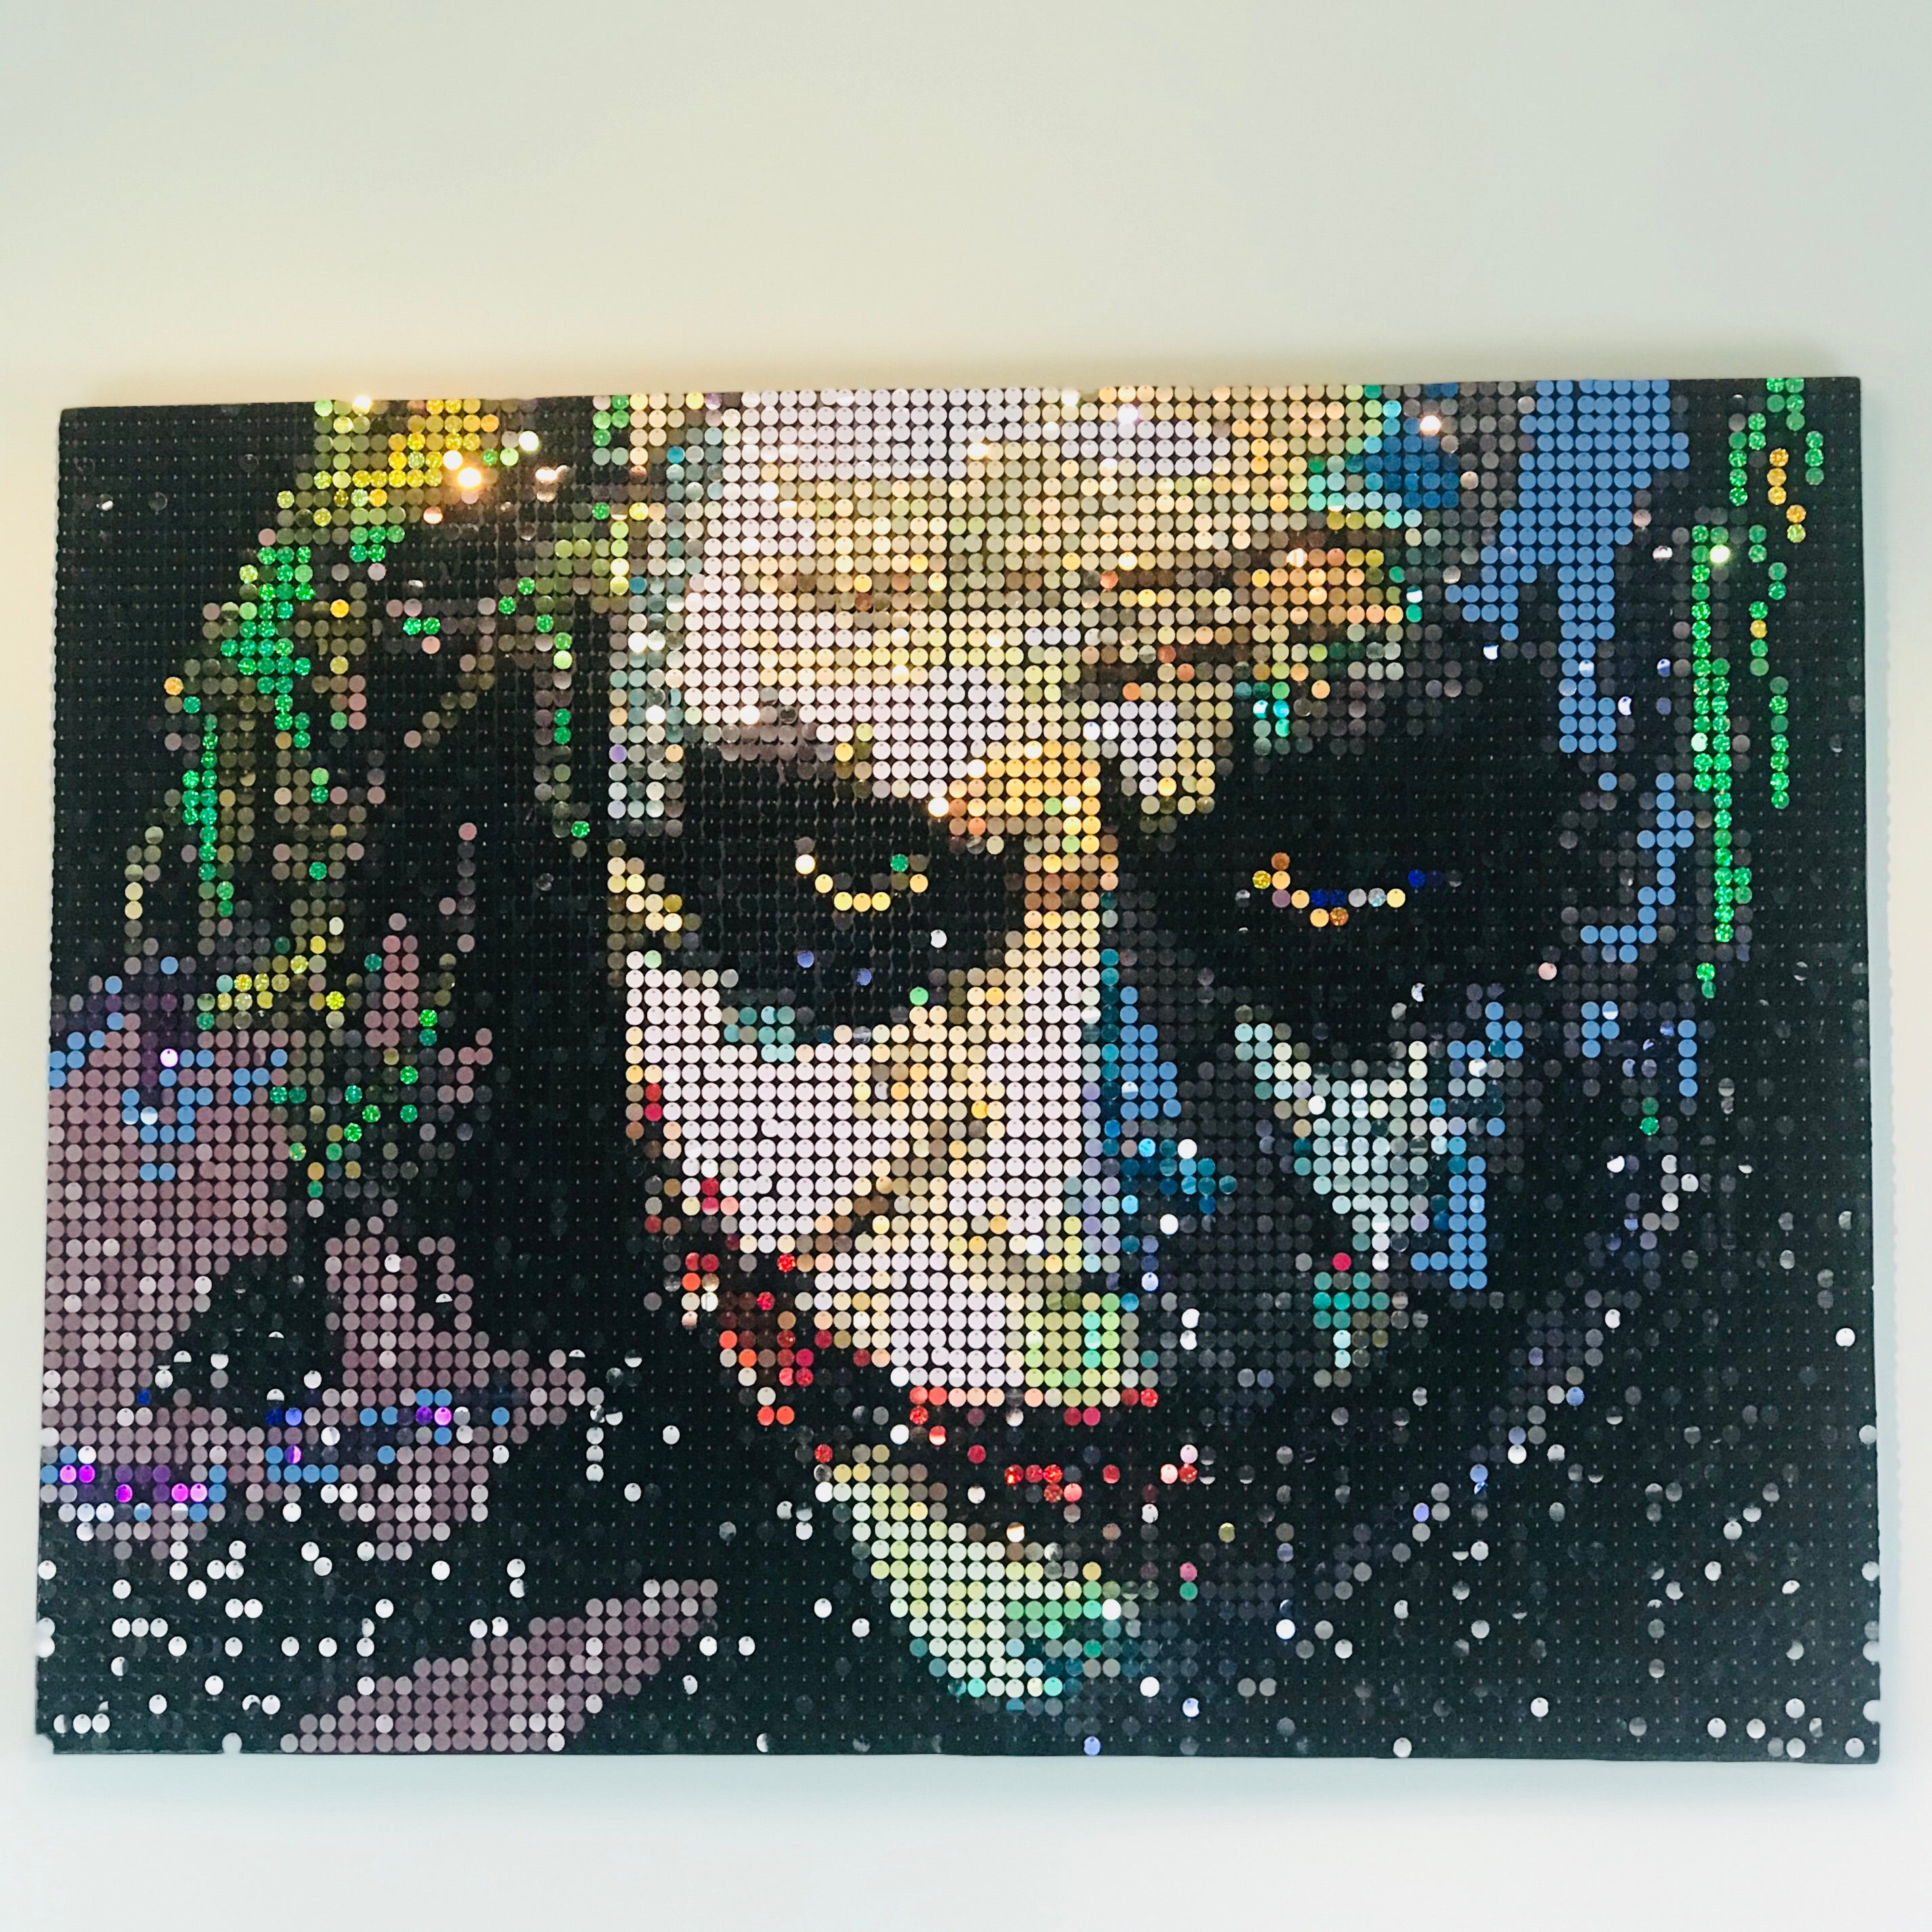 Pix Perfect Pixel Art Heath Ledger Joker